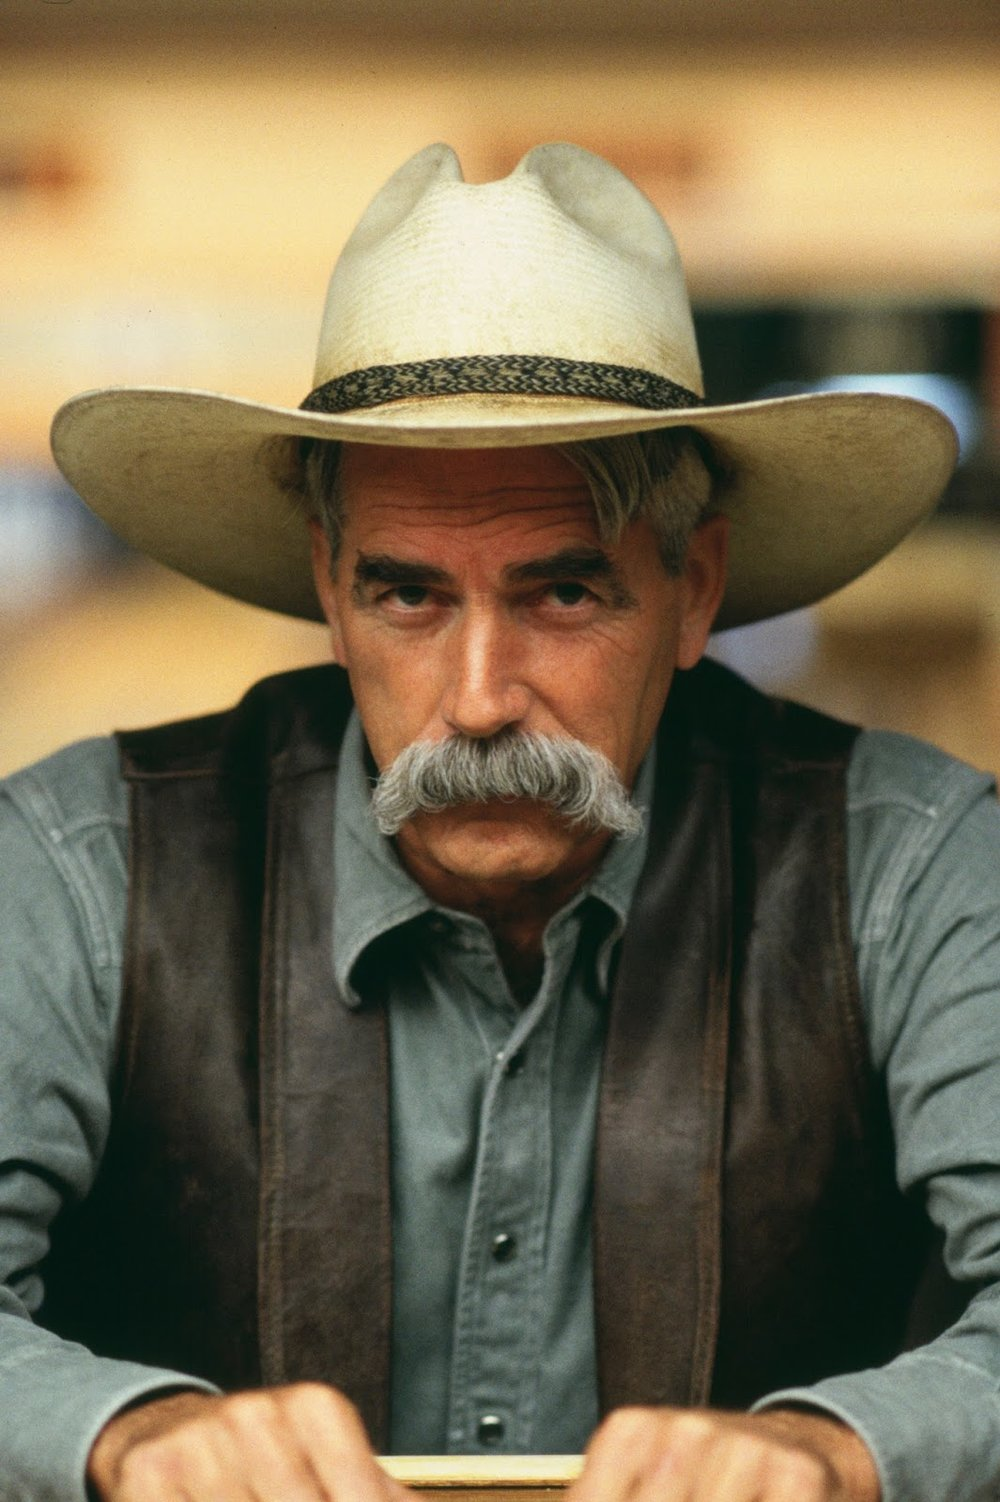 Sam Elliott in the 'Big Lebowski', wearing what I believe is the epitome of the 'walrus mustache'.